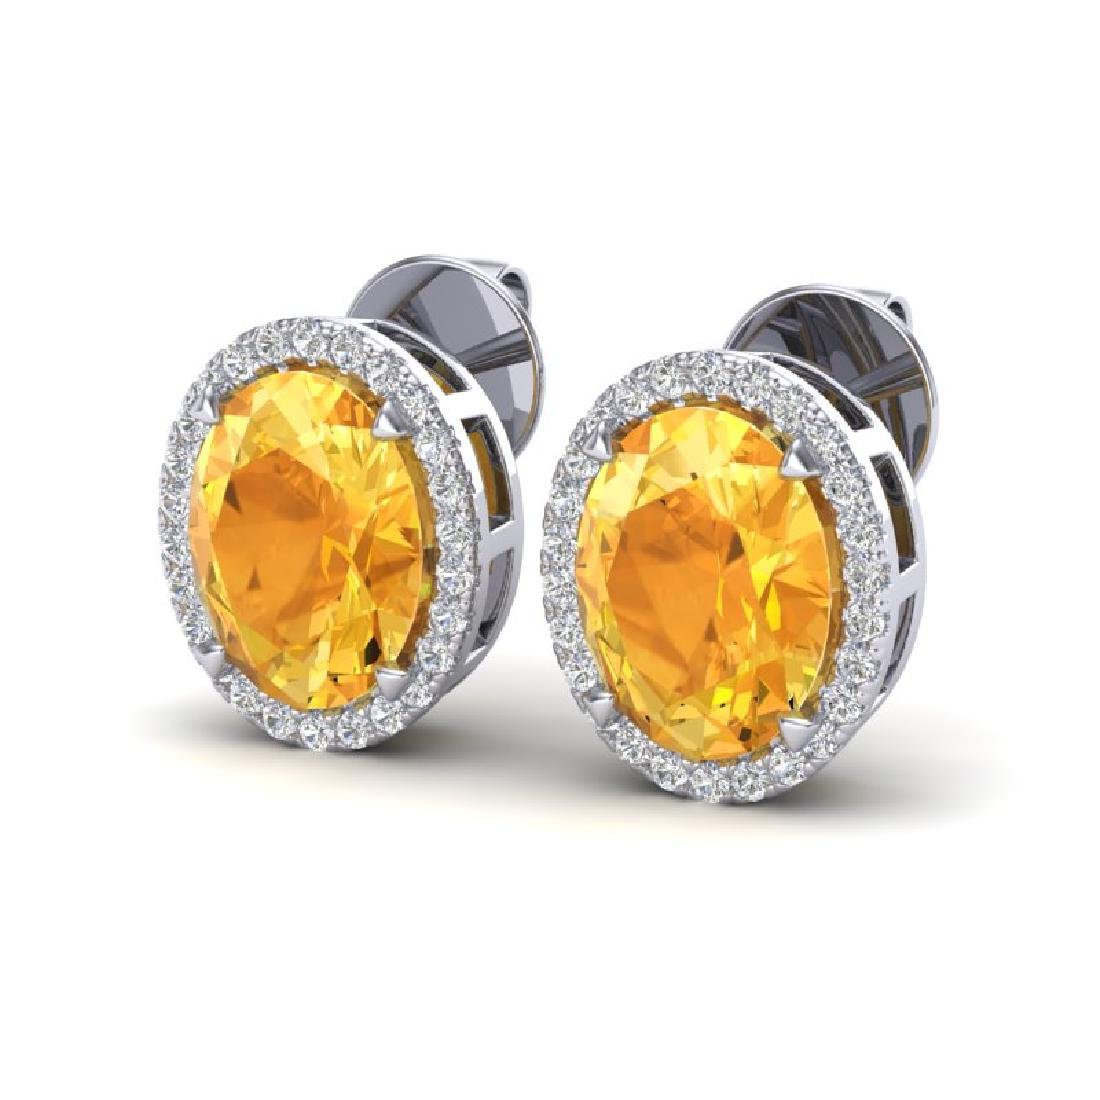 5.50 CTW Citrine & Micro VS/SI Diamond Halo Earrings